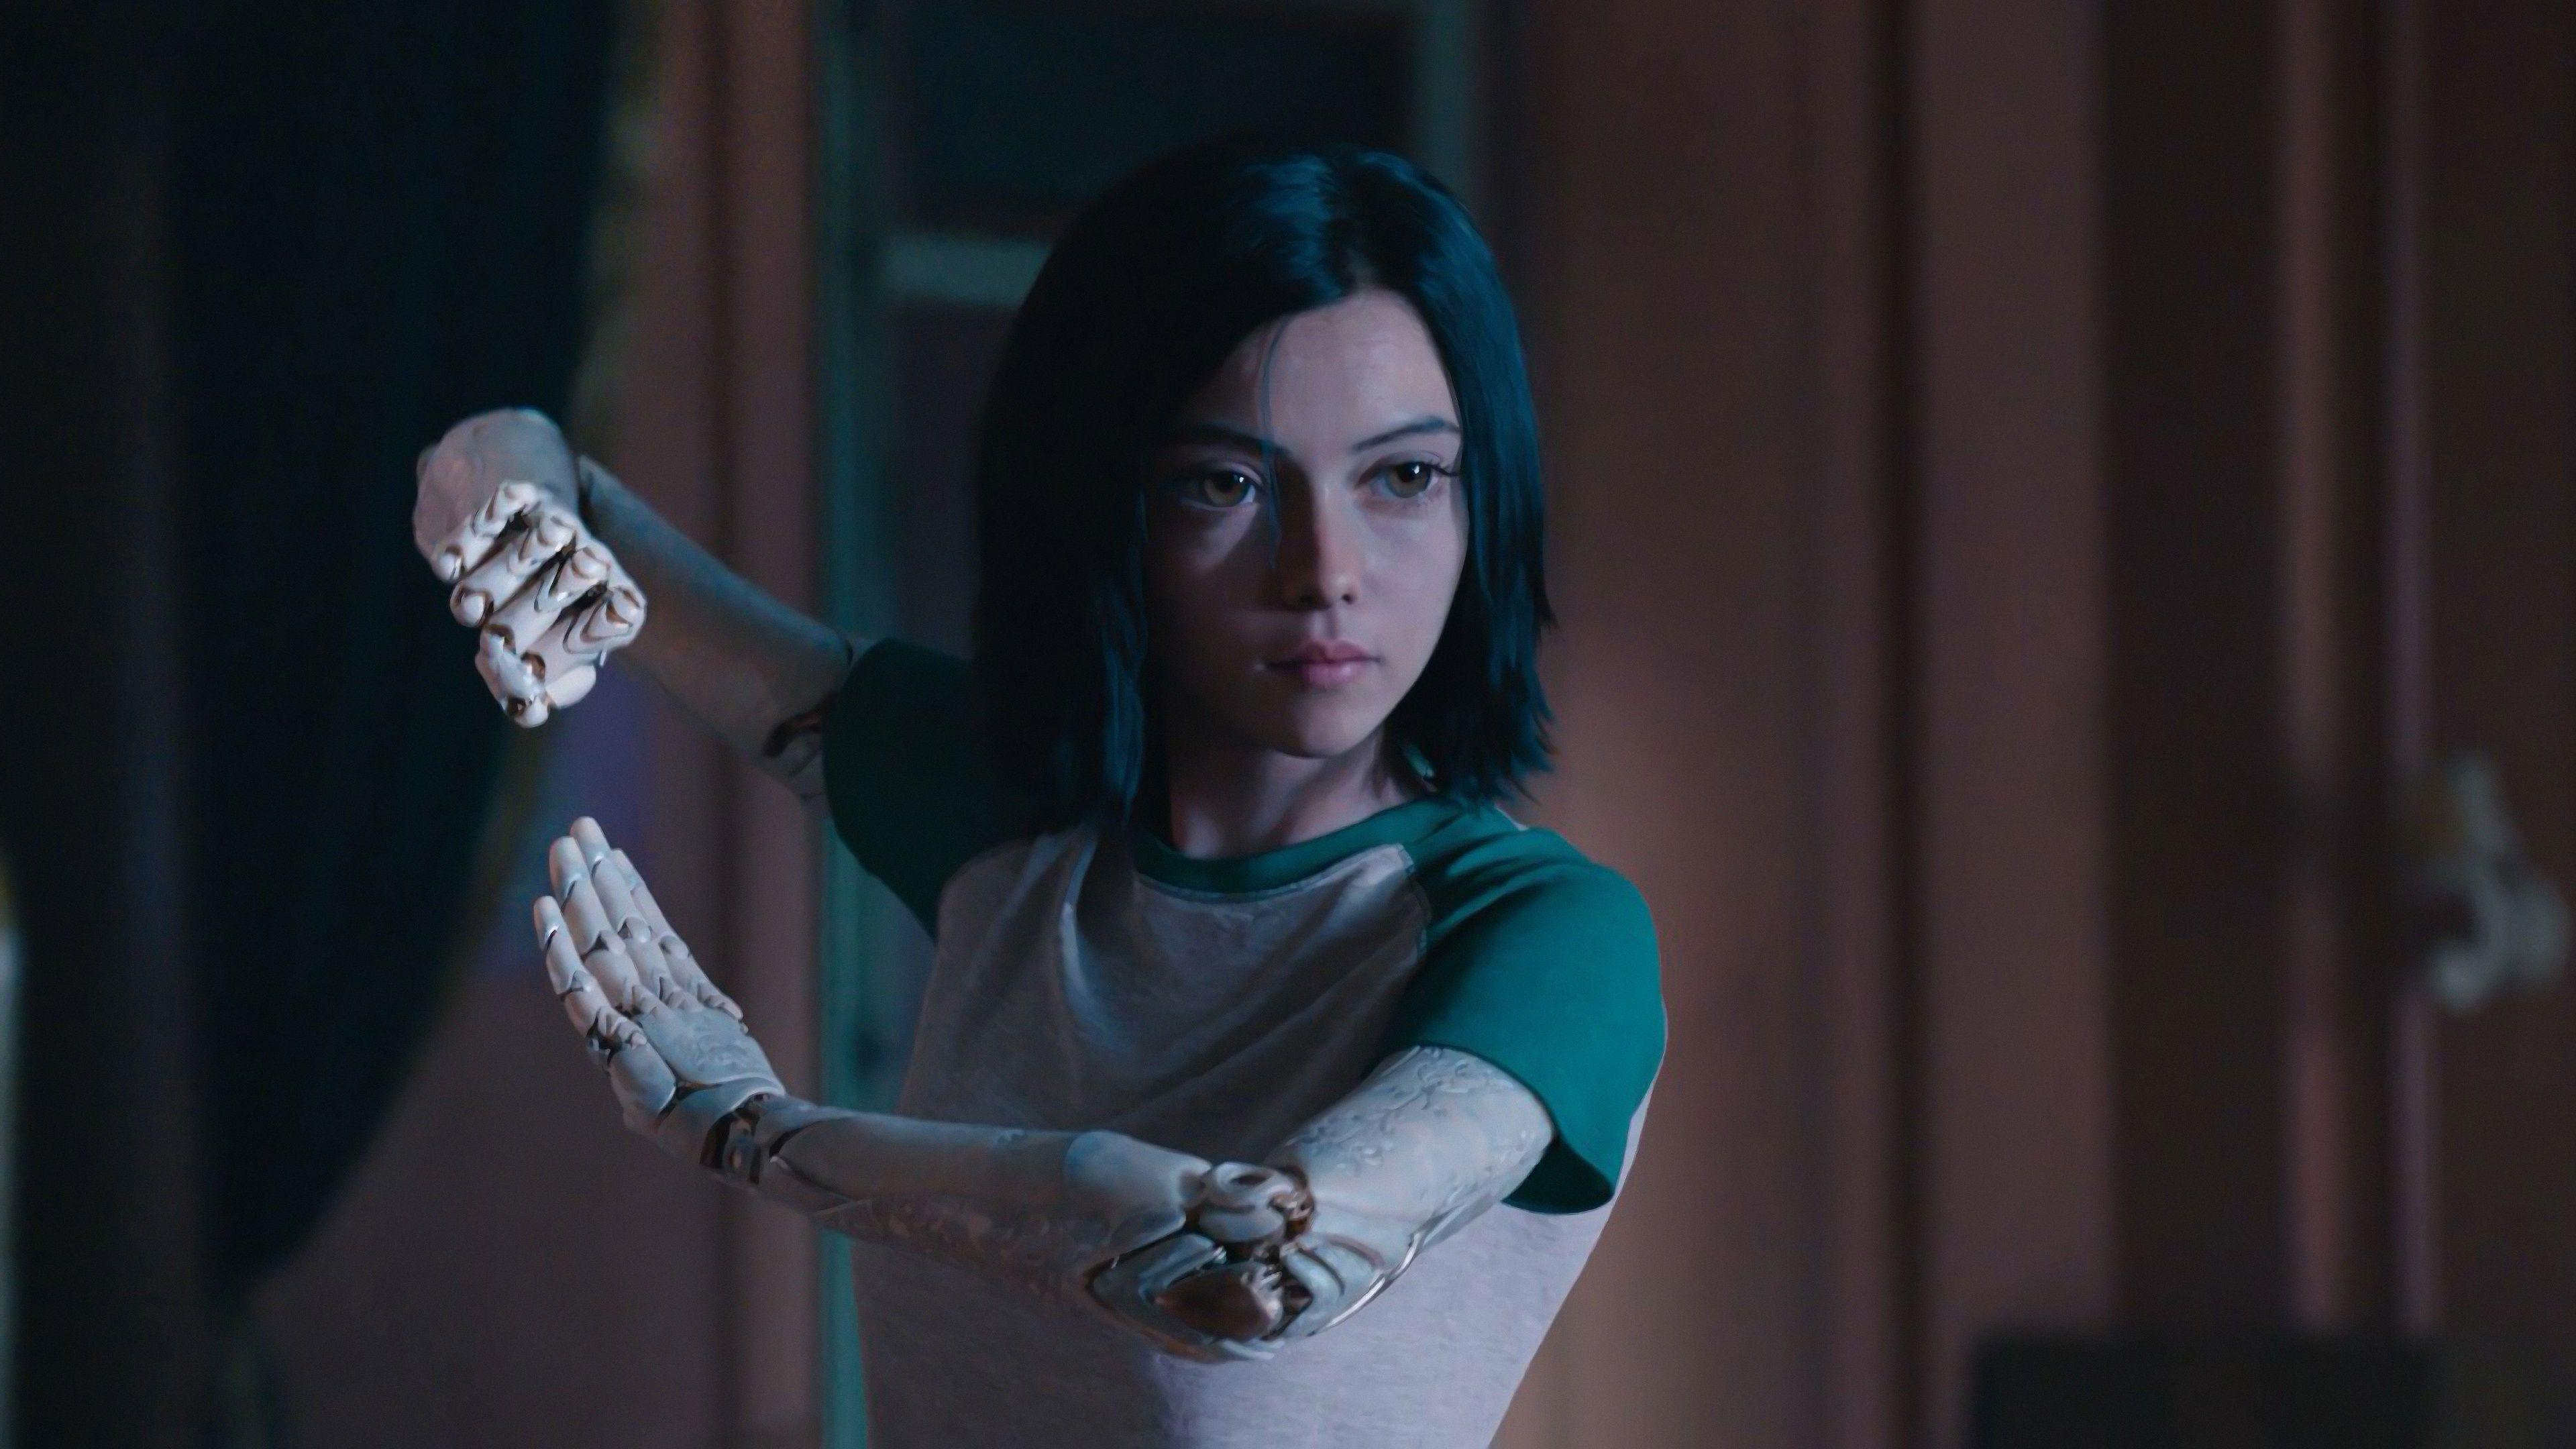 Rosa Salazar In Alita Battle Angel rosa salazar wallpapers, movies